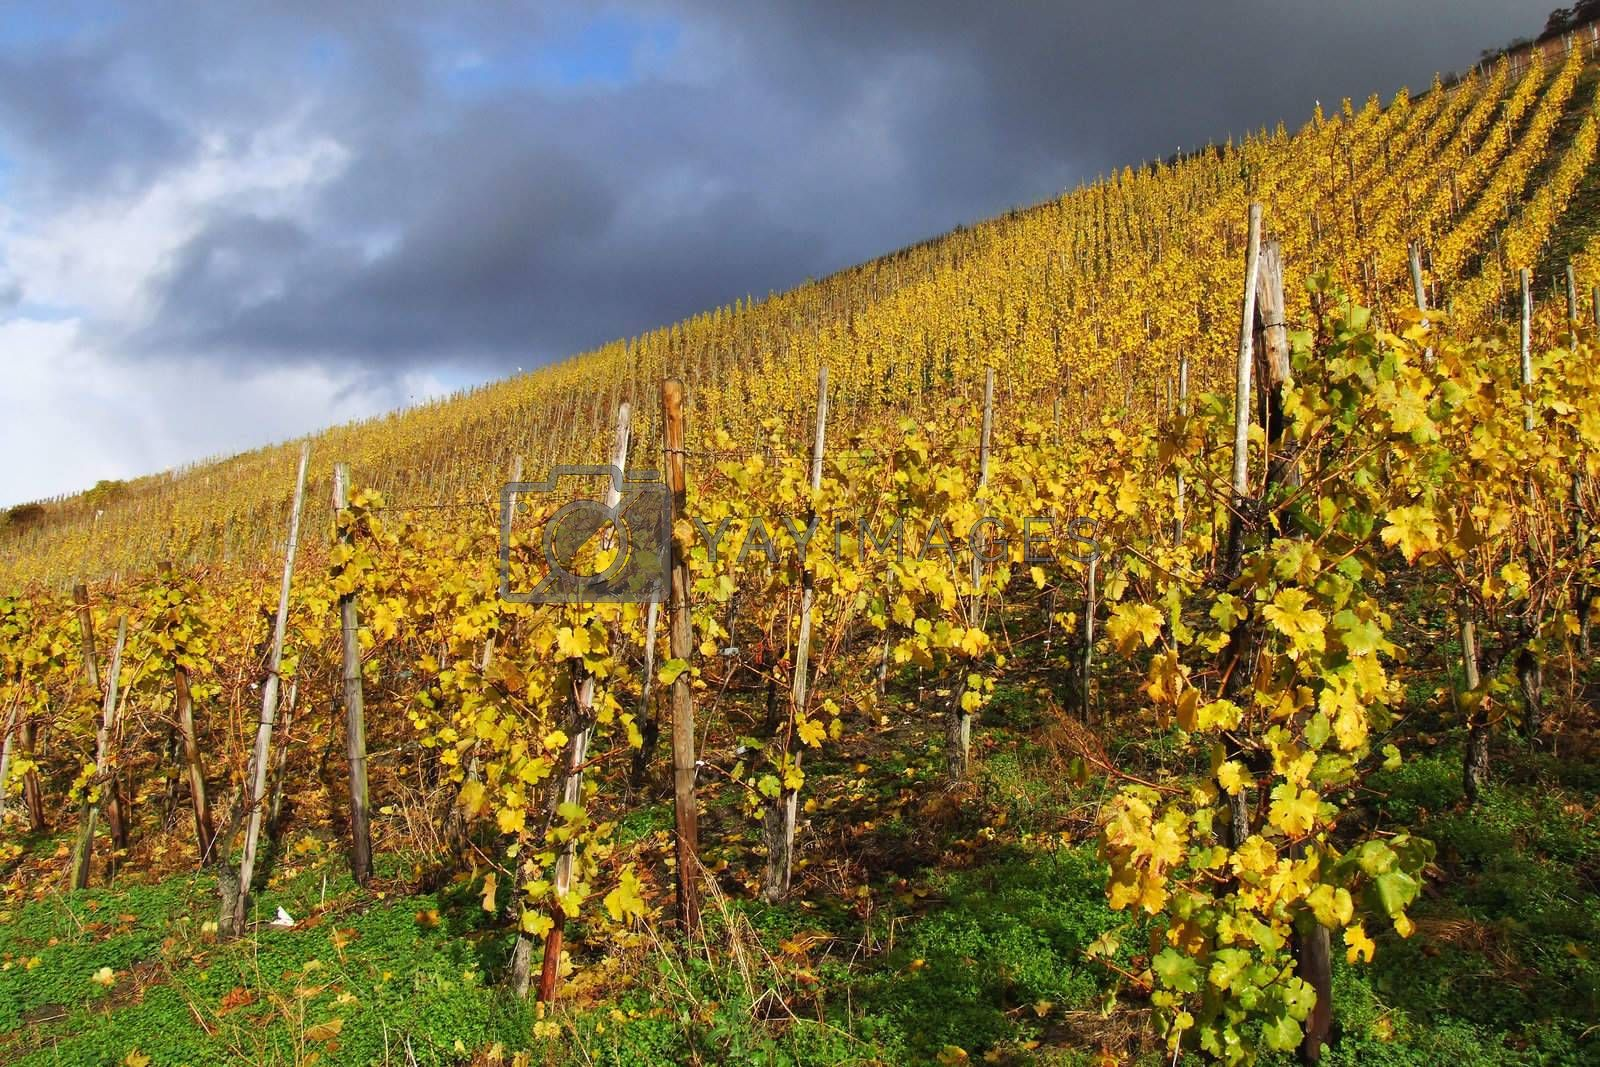 Royalty free image of Vineyard in sunshine by azurin